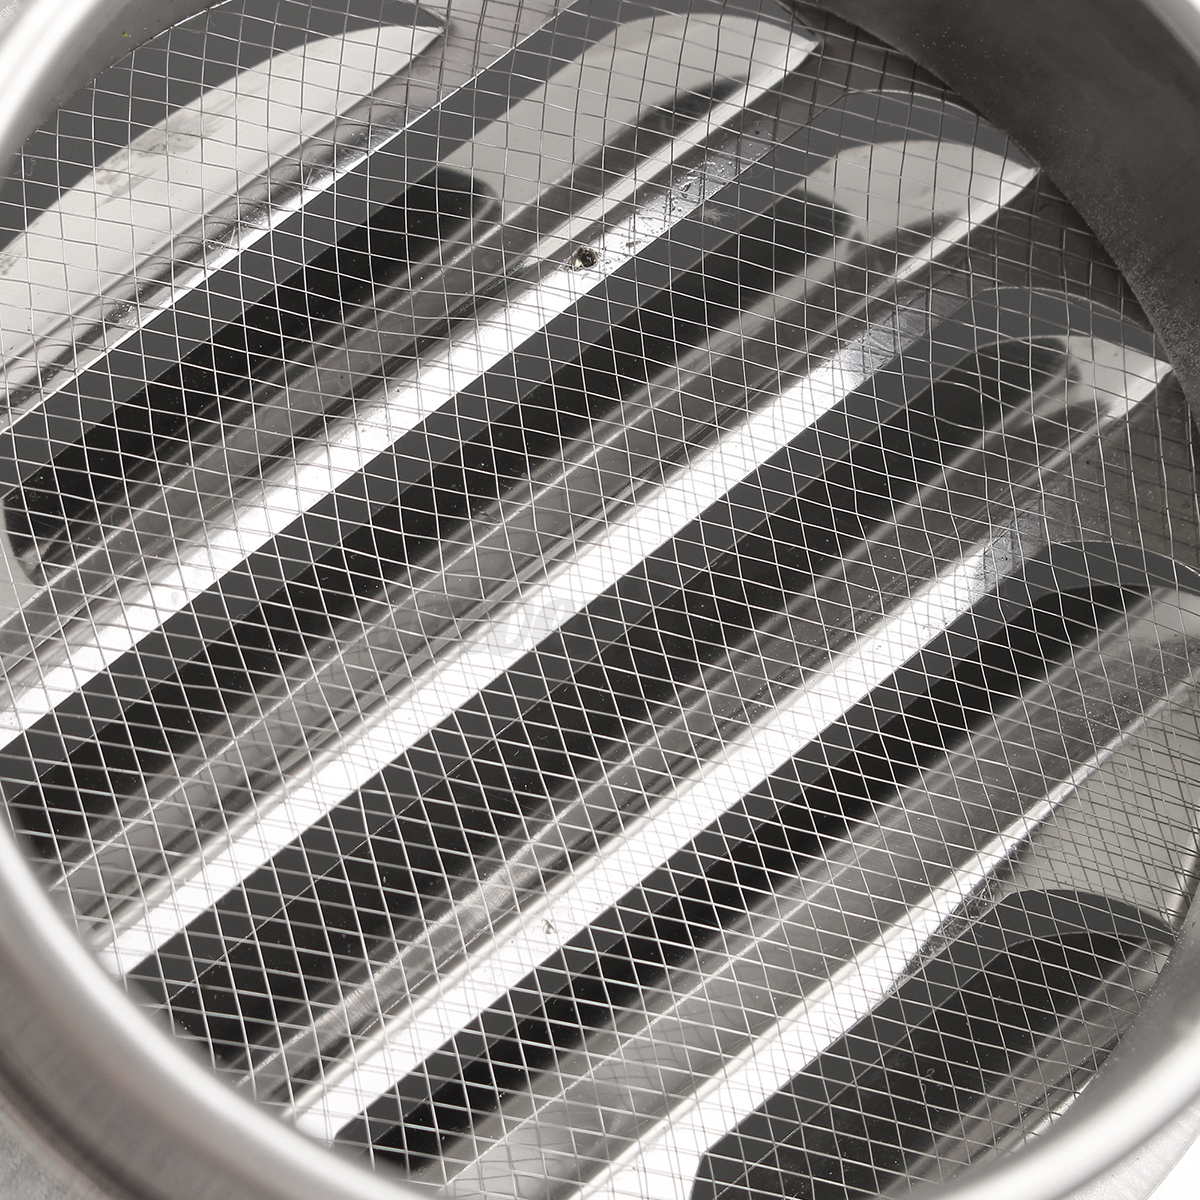 Stainless Steel Duct Grille : Stainless steel circle air vent grille door ventilation